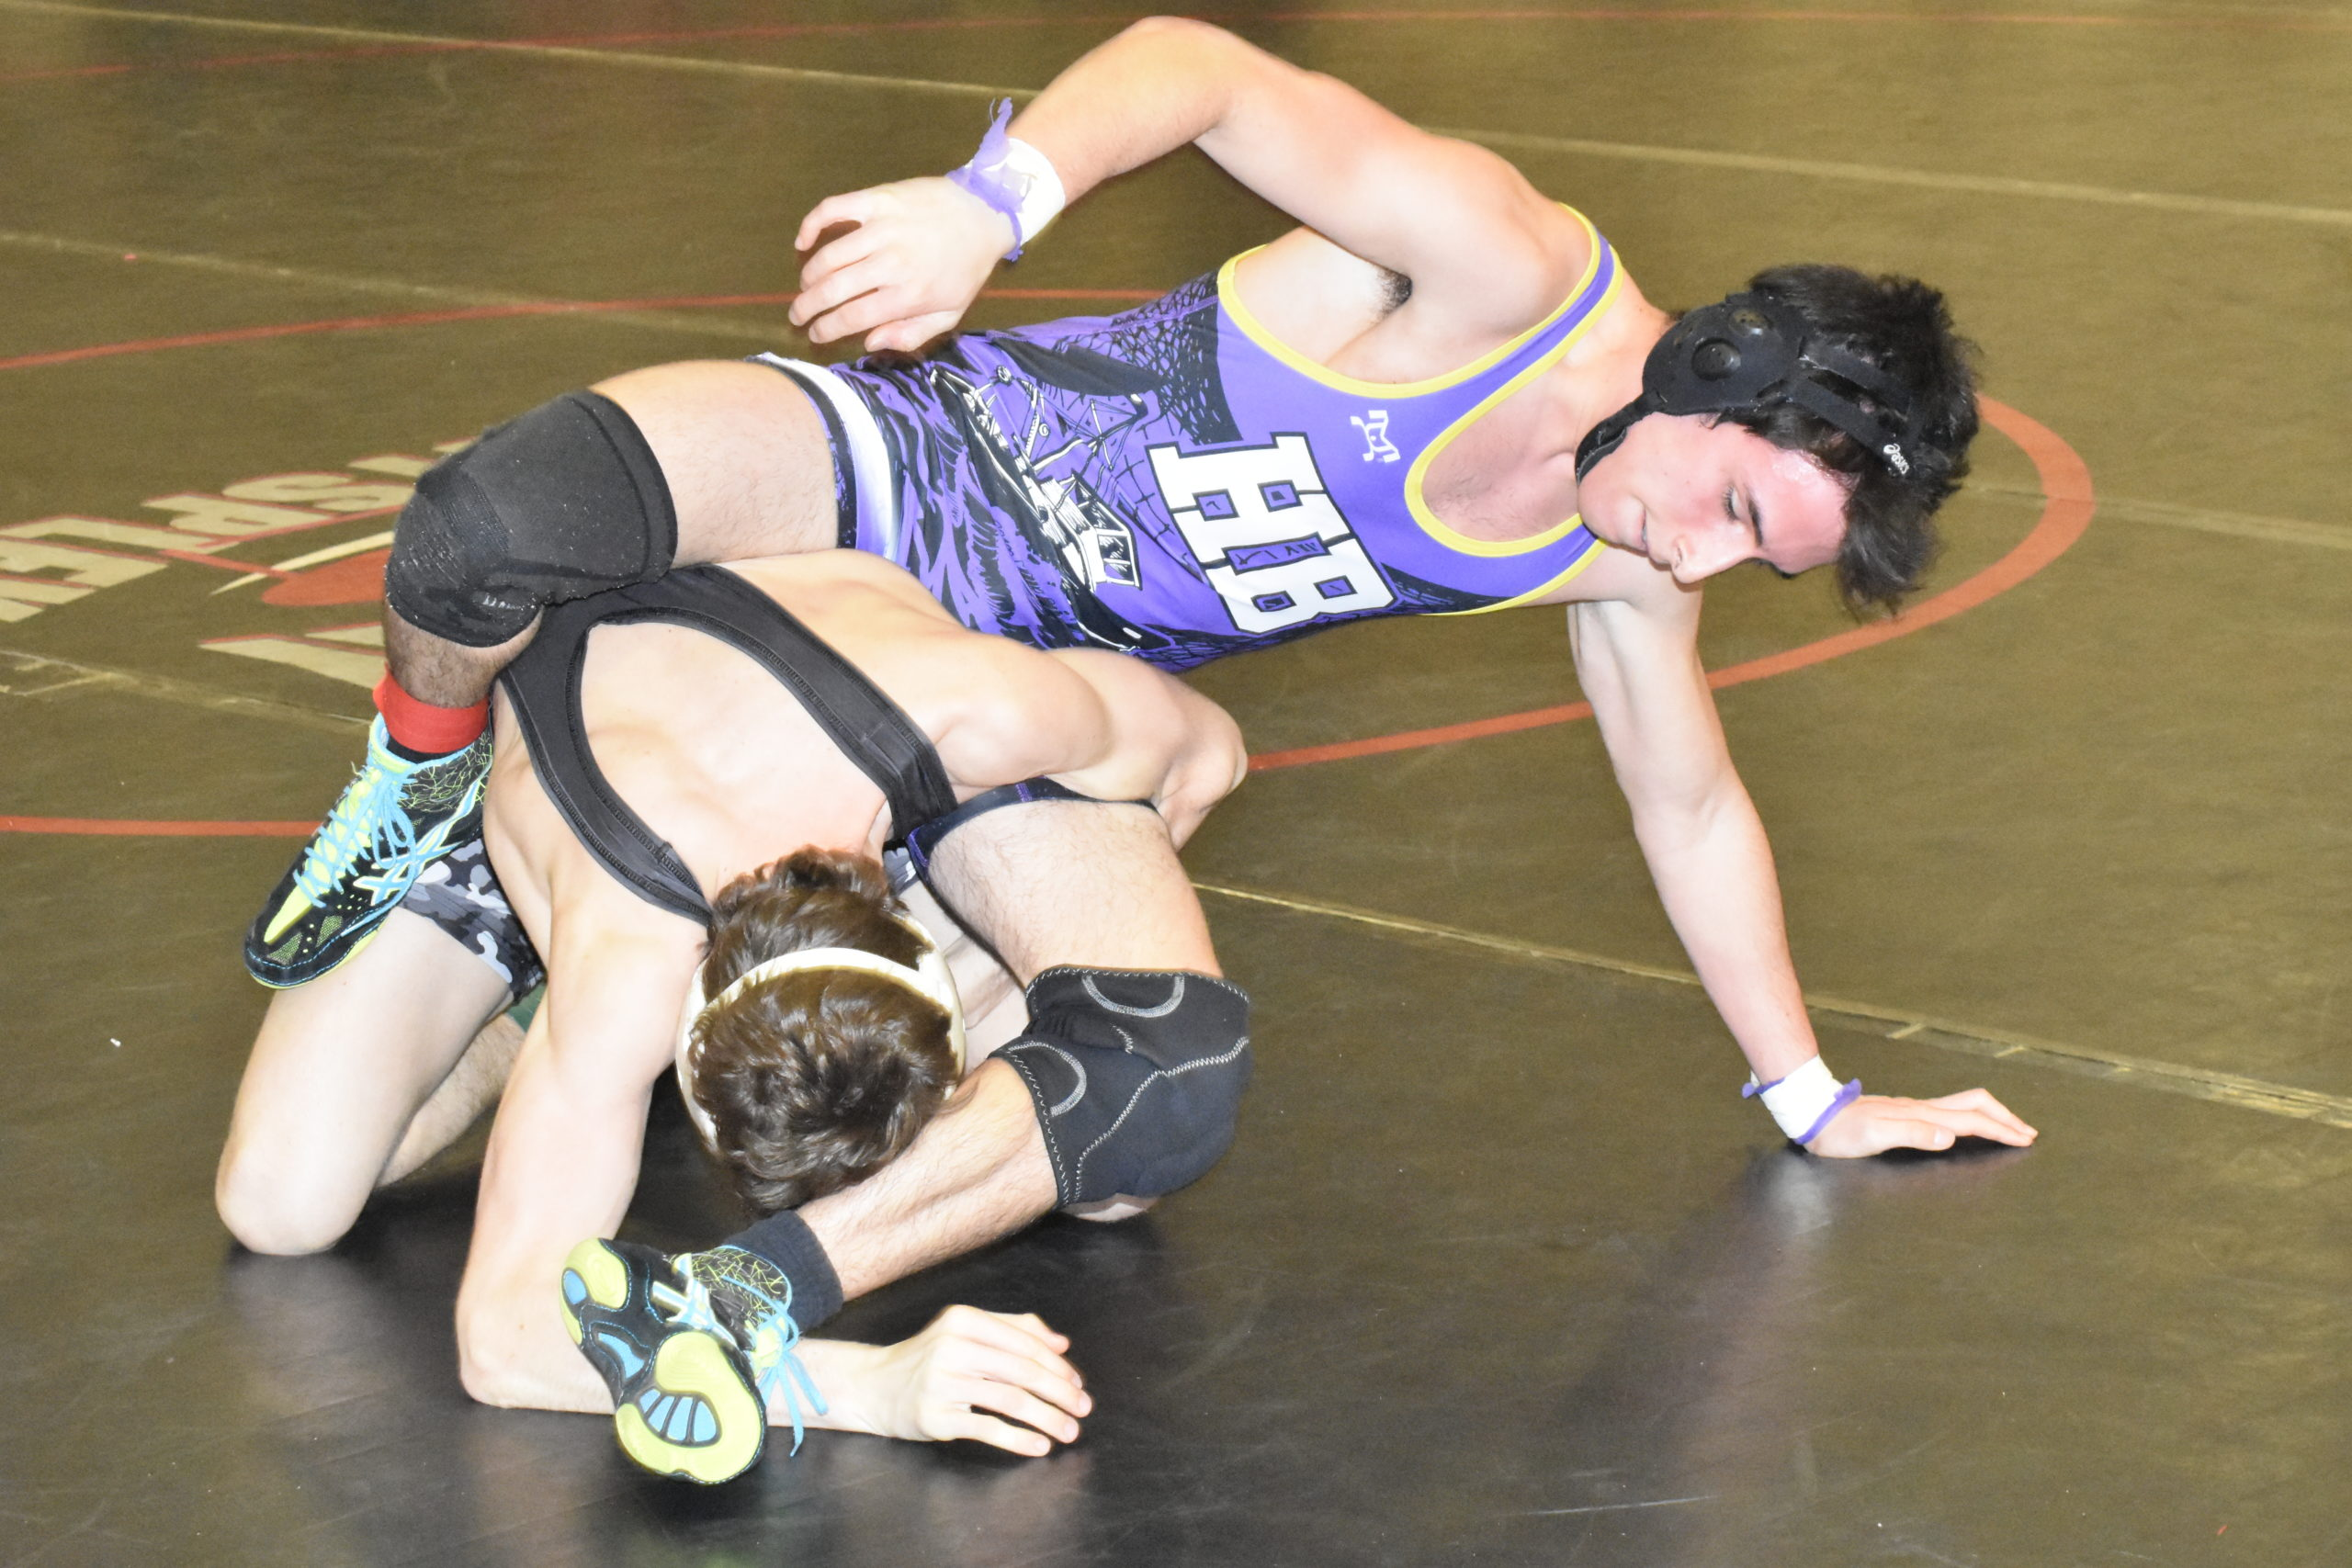 Nick Pacheco of Hampton Bays battles with Babylon's Jack DeVoe. Pacheco lost, 5-2, falling a round short of placing.